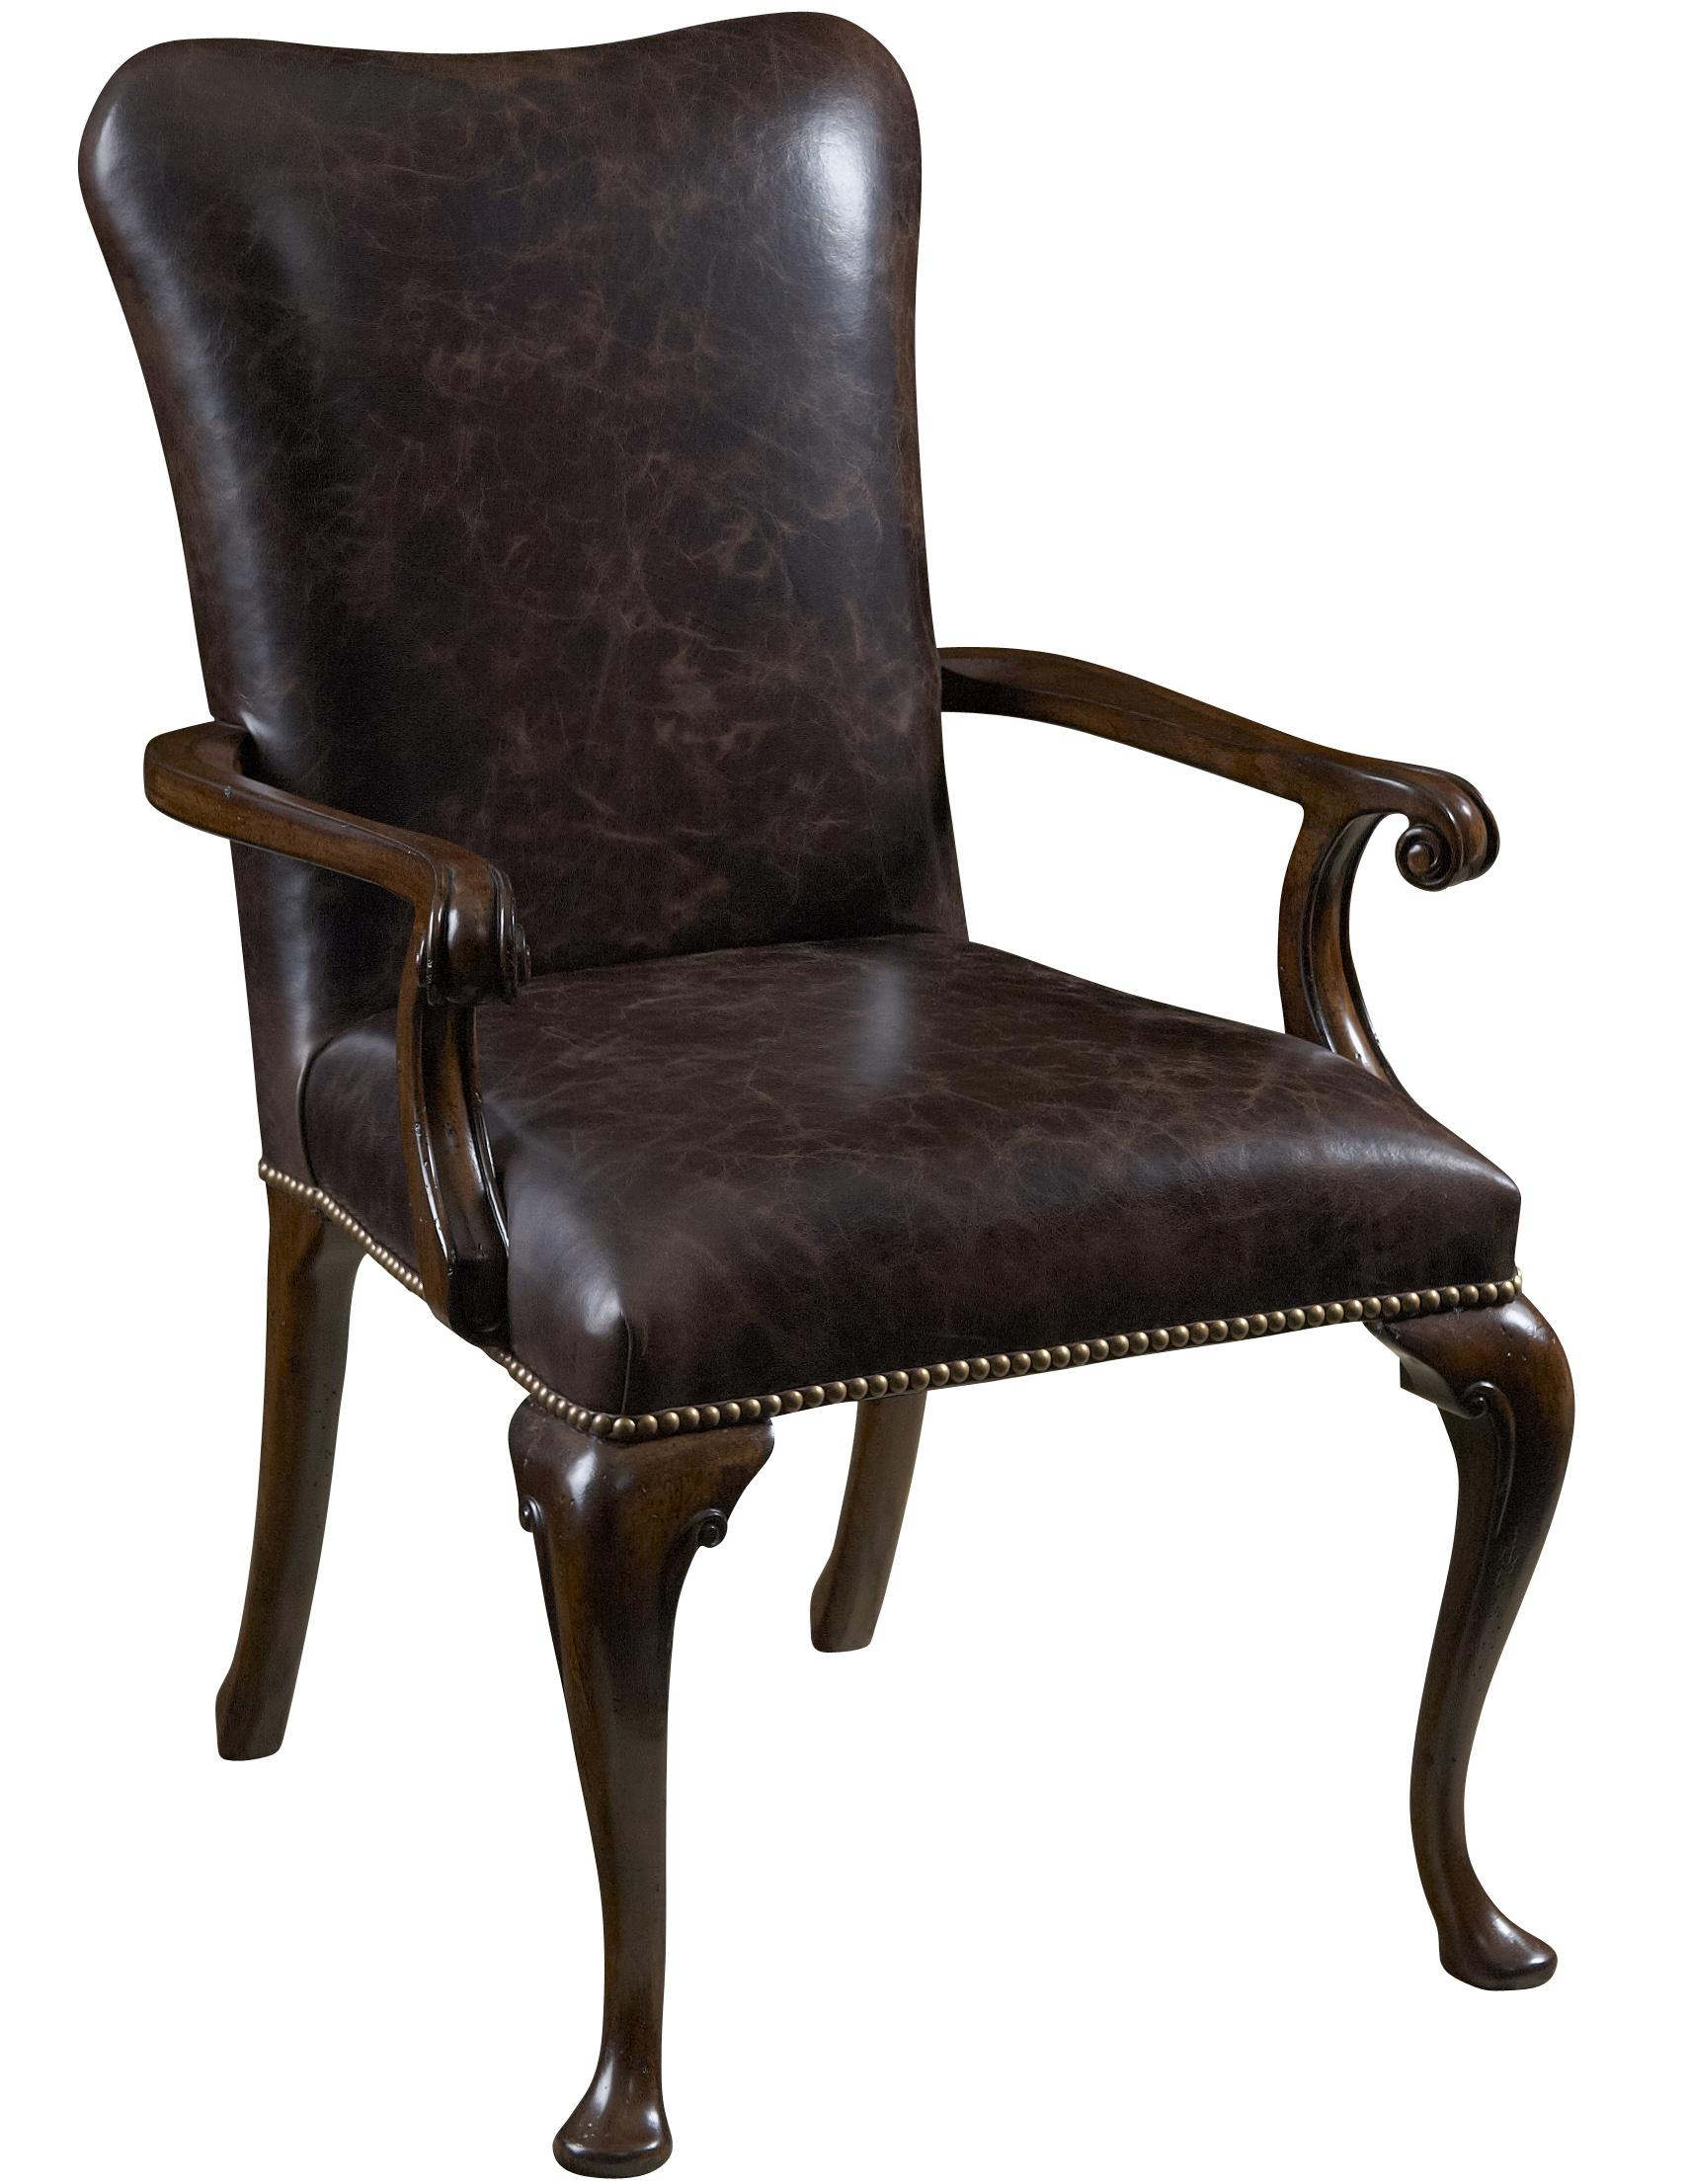 upholstered chairs with wooden arms crate and barrel dining canada leather arm chair by fine furniture